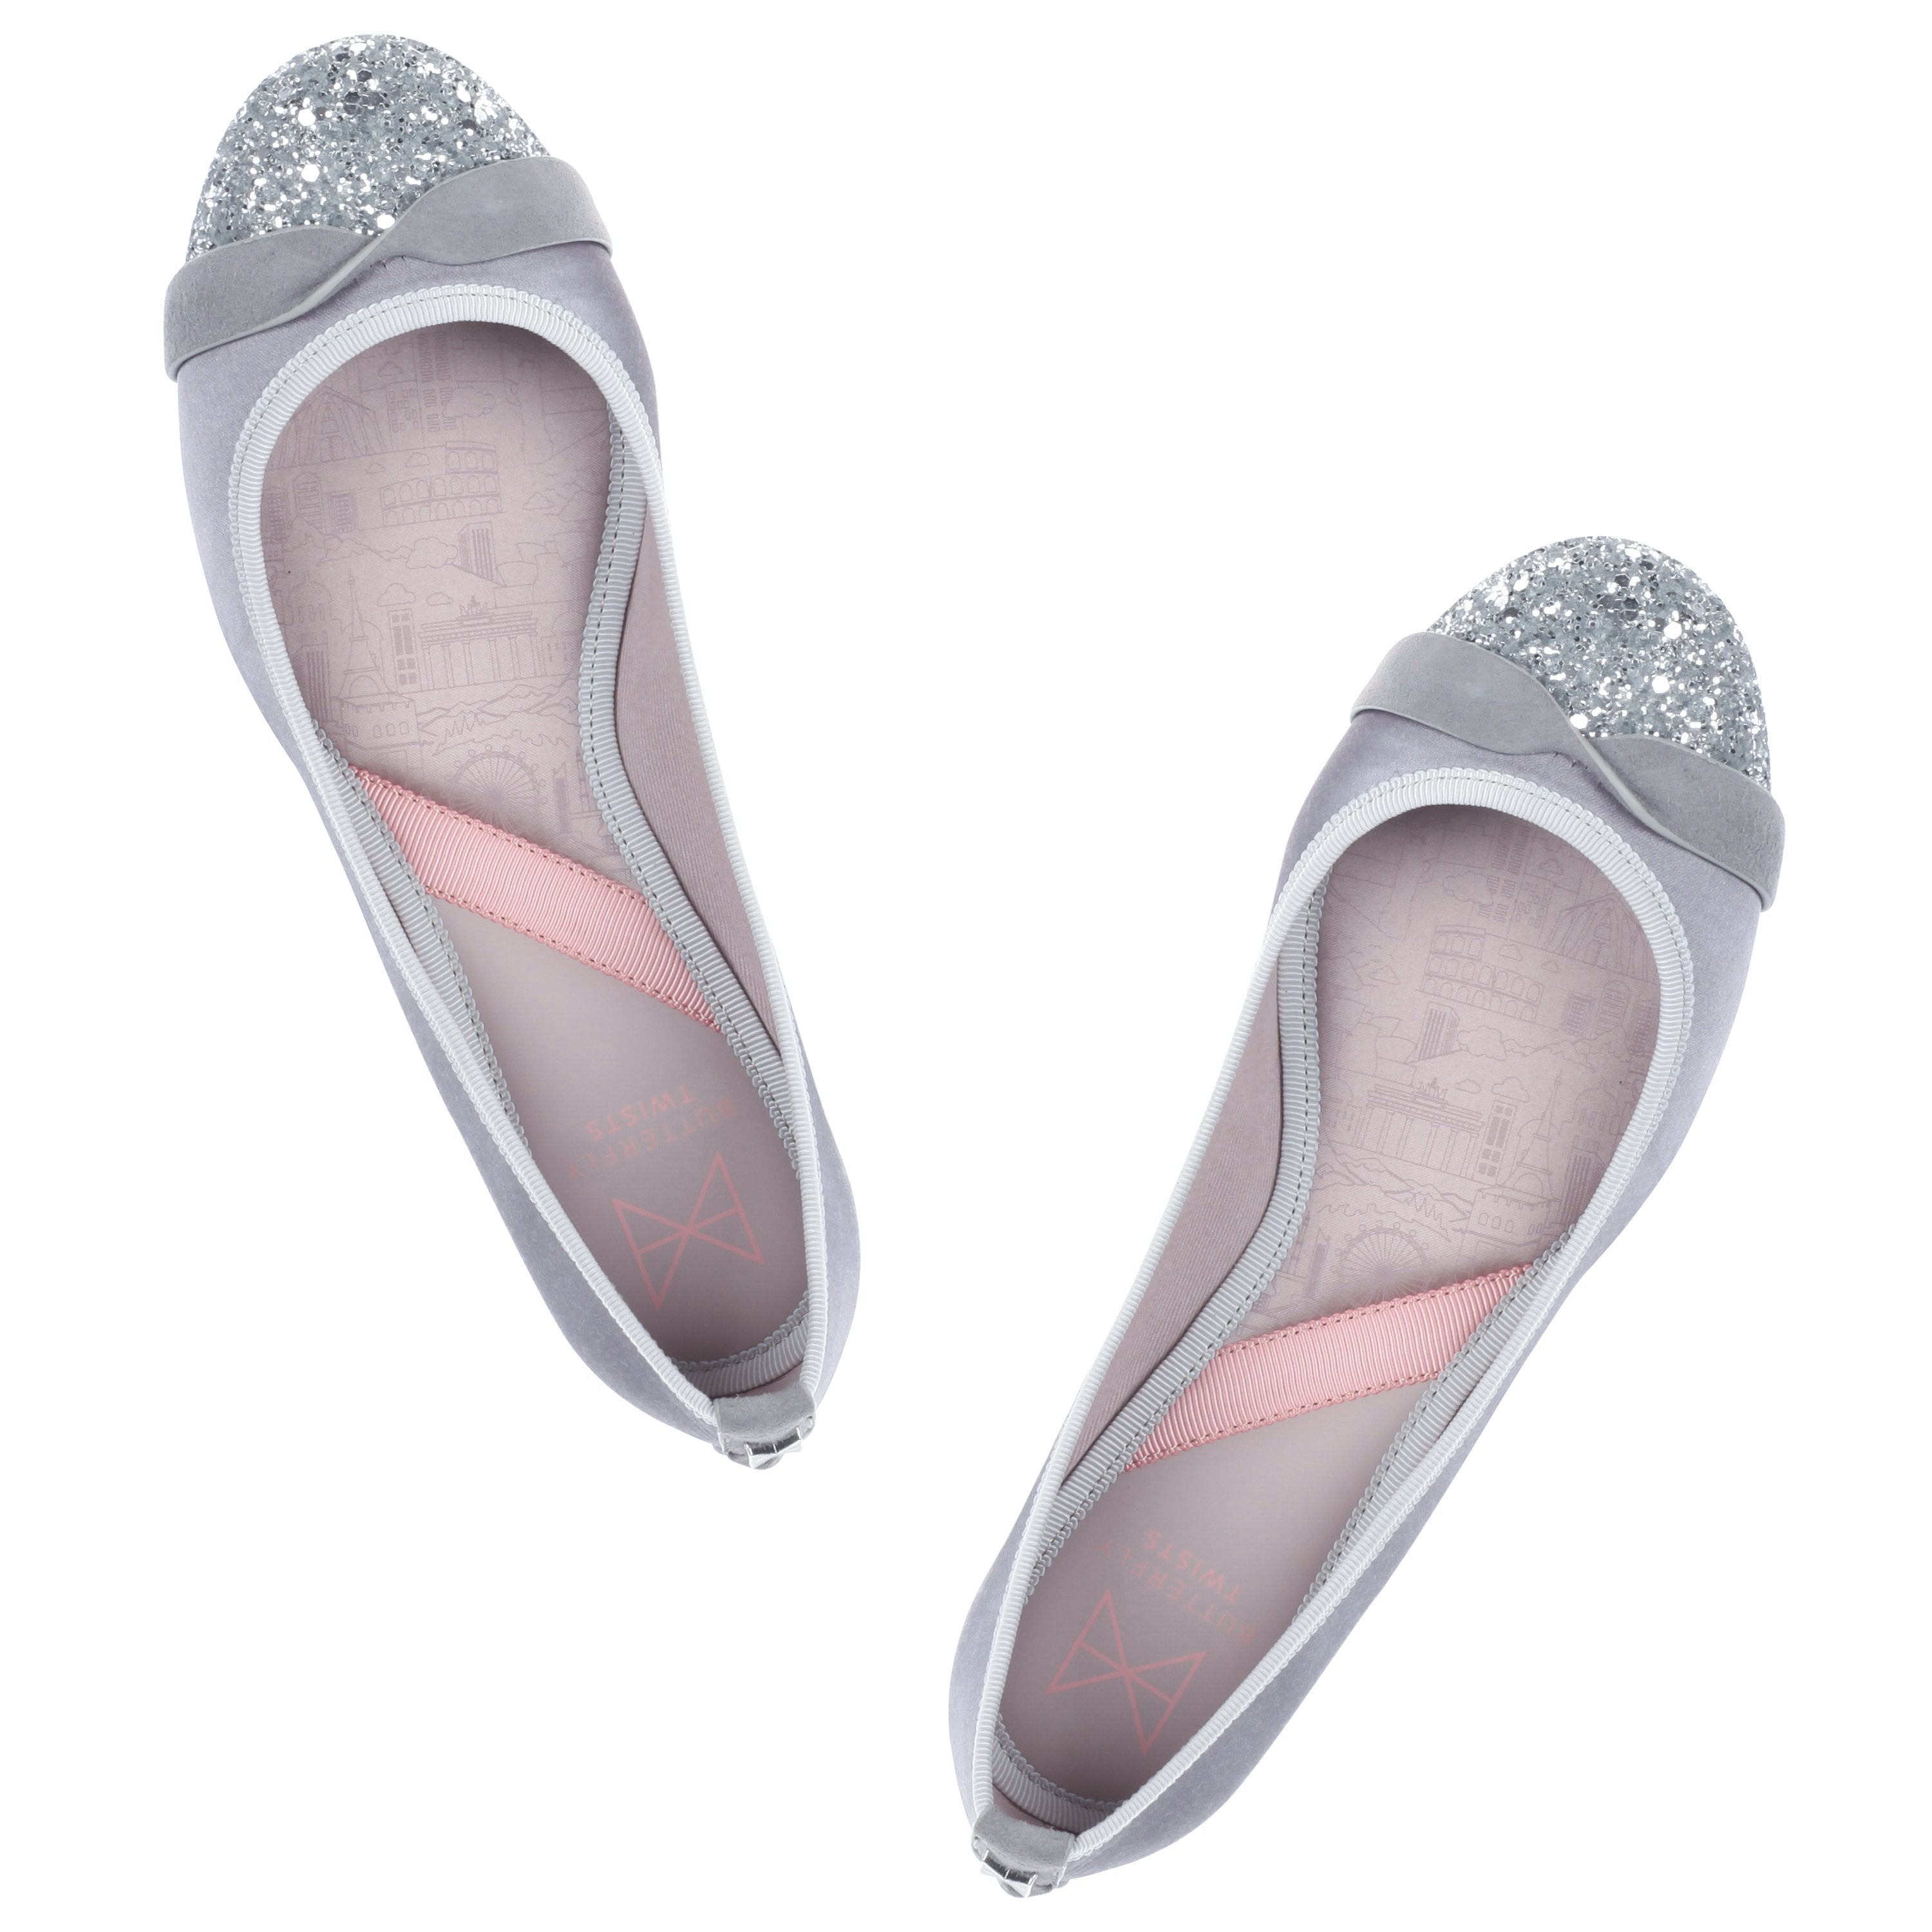 CHARLOTTE is utterly feminine and a sophisticated wardrobe staple. Our signature twist appears across a silver glitter toe cap, contrasting to luxurious grey satin. An elegant, almond toe shaped ballerina Sumptuous grey satin paired with a silver glitter toe cap Twist detailing across the toe for added style A breathable, soft cotton lining Cushioning memory foam insoles for added comfort Durable, skid resistant rubber sole We deliver to over 50 countries worldwide. to see which countries we del